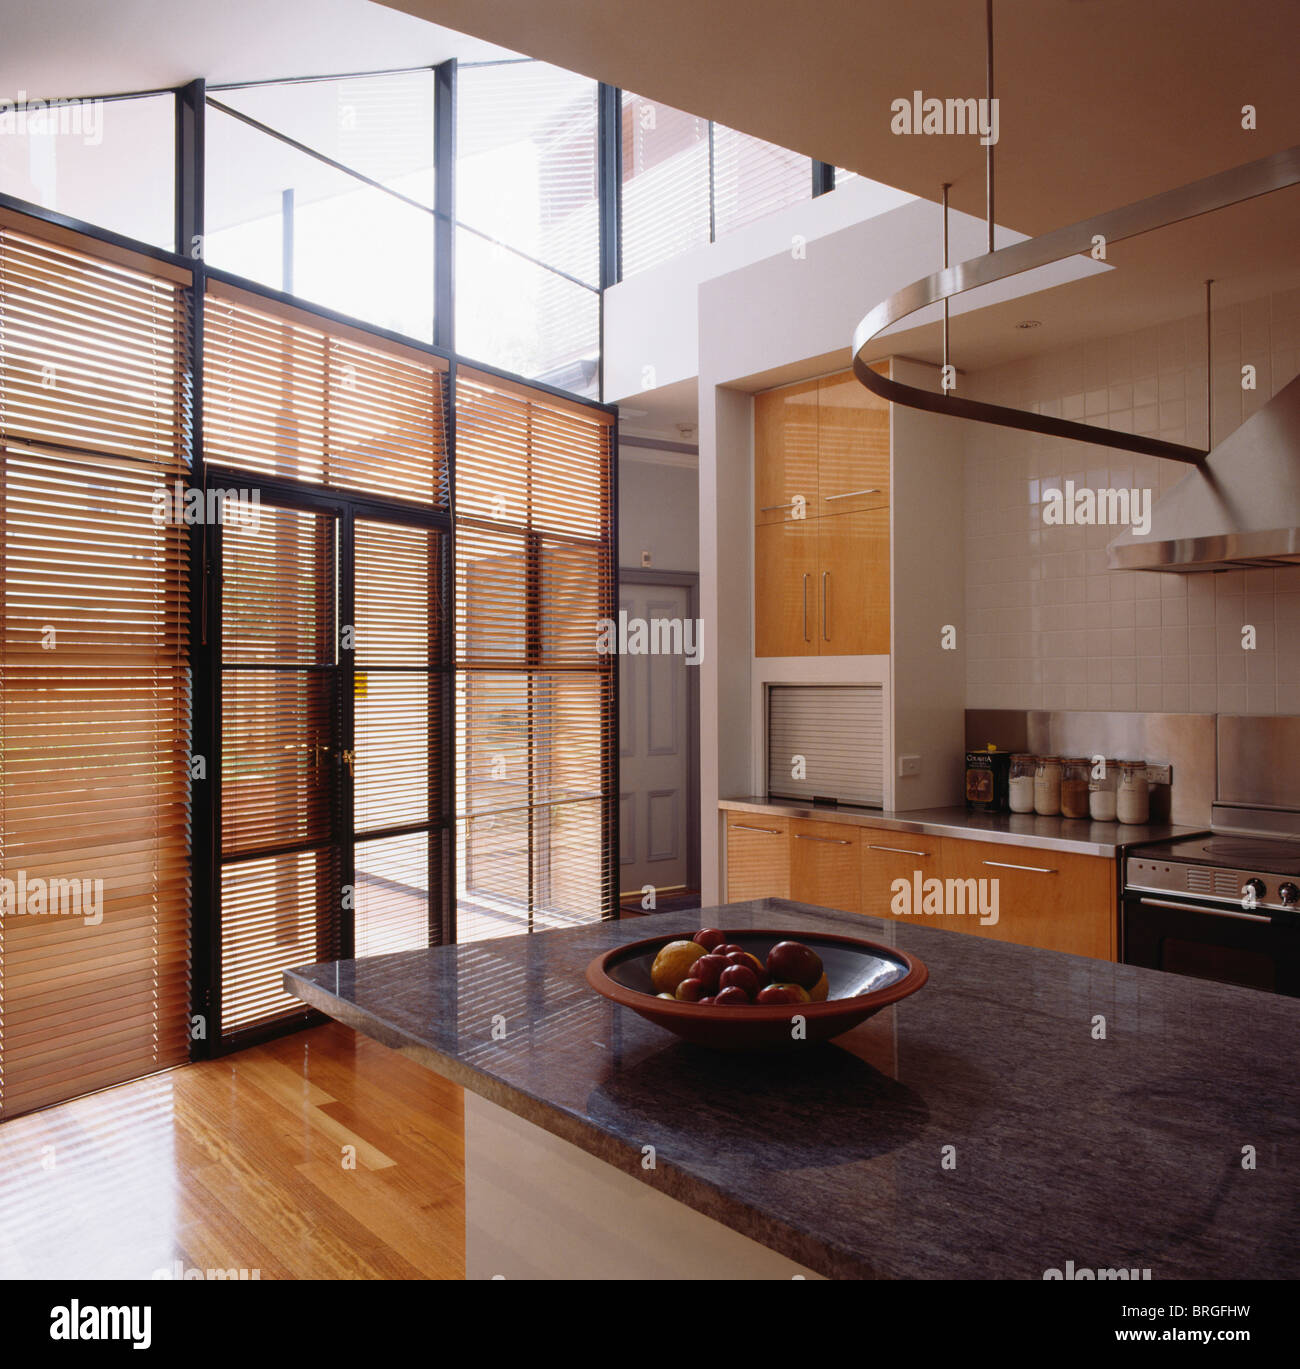 Modern Kitchen Blinds wooden venetian blinds on glass doors in large double-height